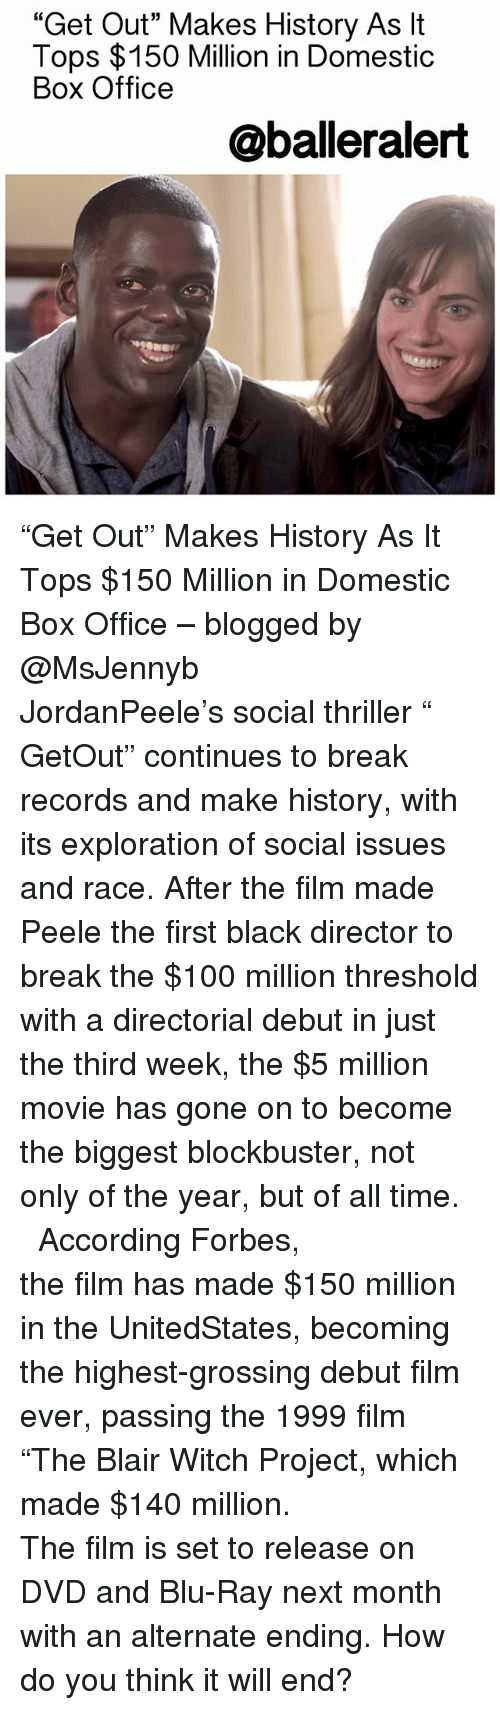 """Anaconda, Baller Alert, and Blockbuster: """"Get Out"""" Makes History As lt  Tops $150 Million in Domestic  Box Office  @baller alert """"Get Out"""" Makes History As It Tops $150 Million in Domestic Box Office – blogged by @MsJennyb ⠀⠀⠀⠀⠀⠀⠀⠀⠀ ⠀⠀⠀⠀⠀⠀⠀⠀⠀ JordanPeele's social thriller """" GetOut"""" continues to break records and make history, with its exploration of social issues and race. After the film made Peele the first black director to break the $100 million threshold with a directorial debut in just the third week, the $5 million movie has gone on to become the biggest blockbuster, not only of the year, but of all time. ⠀⠀⠀⠀⠀⠀⠀⠀⠀ ⠀⠀⠀⠀⠀⠀⠀⠀⠀ According Forbes, the film has made $150 million in the UnitedStates, becoming the highest-grossing debut film ever, passing the 1999 film """"The Blair Witch Project, which made $140 million. ⠀⠀⠀⠀⠀⠀⠀⠀⠀ ⠀⠀⠀⠀⠀⠀⠀⠀⠀ The film is set to release on DVD and Blu-Ray next month with an alternate ending. How do you think it will end?"""